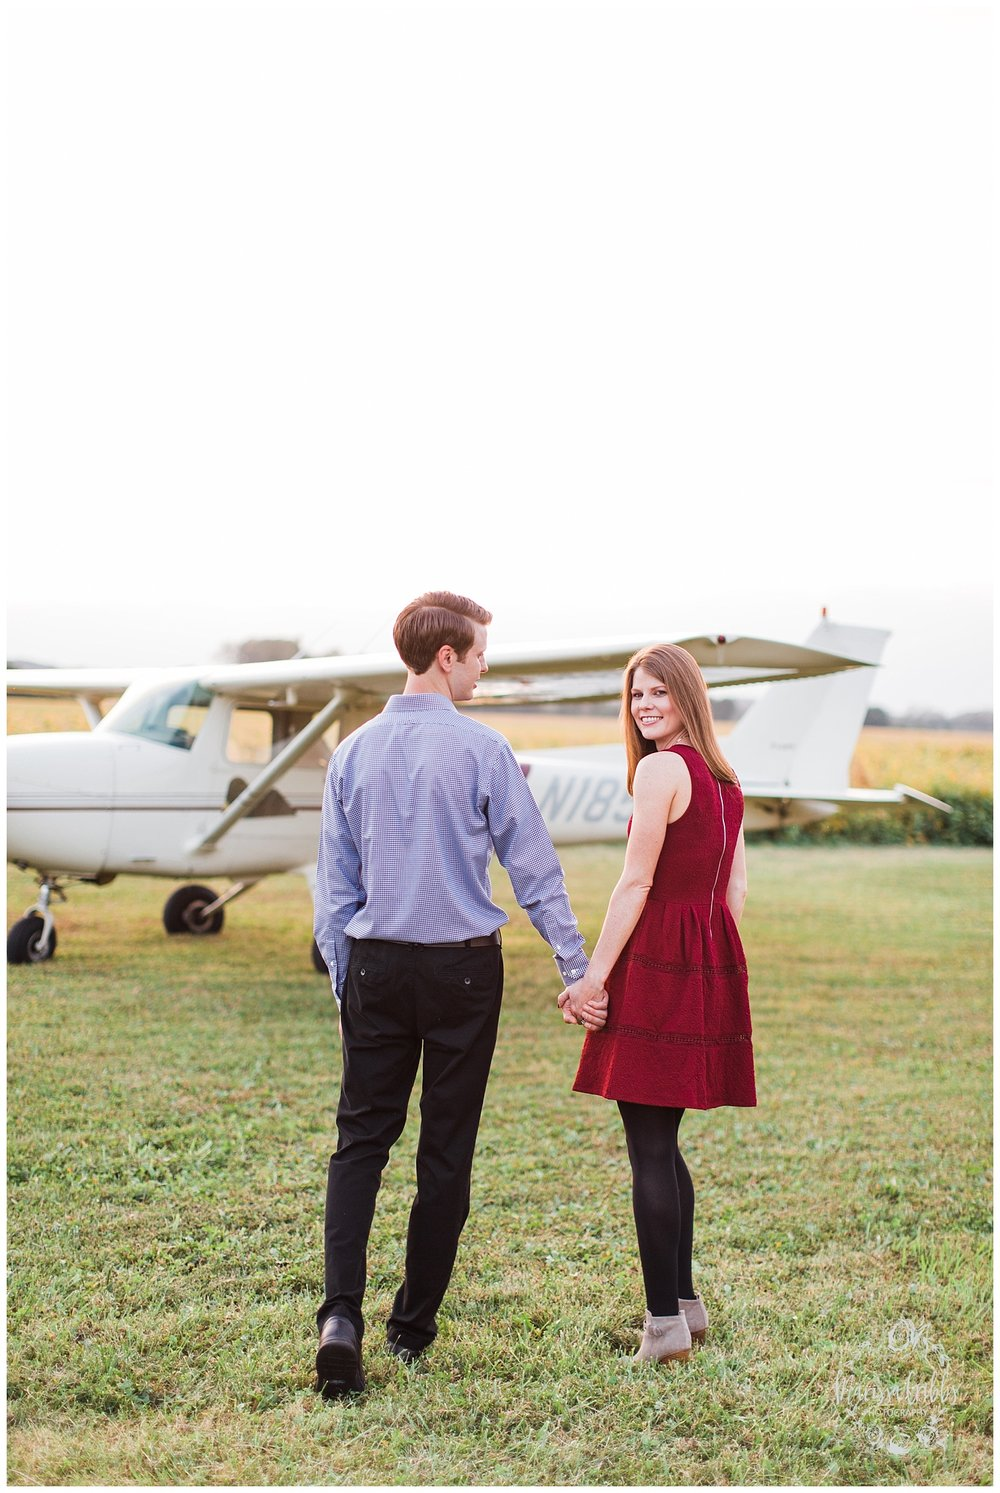 KELLY & BEN ENGAGED | MARISSA CRIBBS PHOTOGRAPHY_3149.jpg